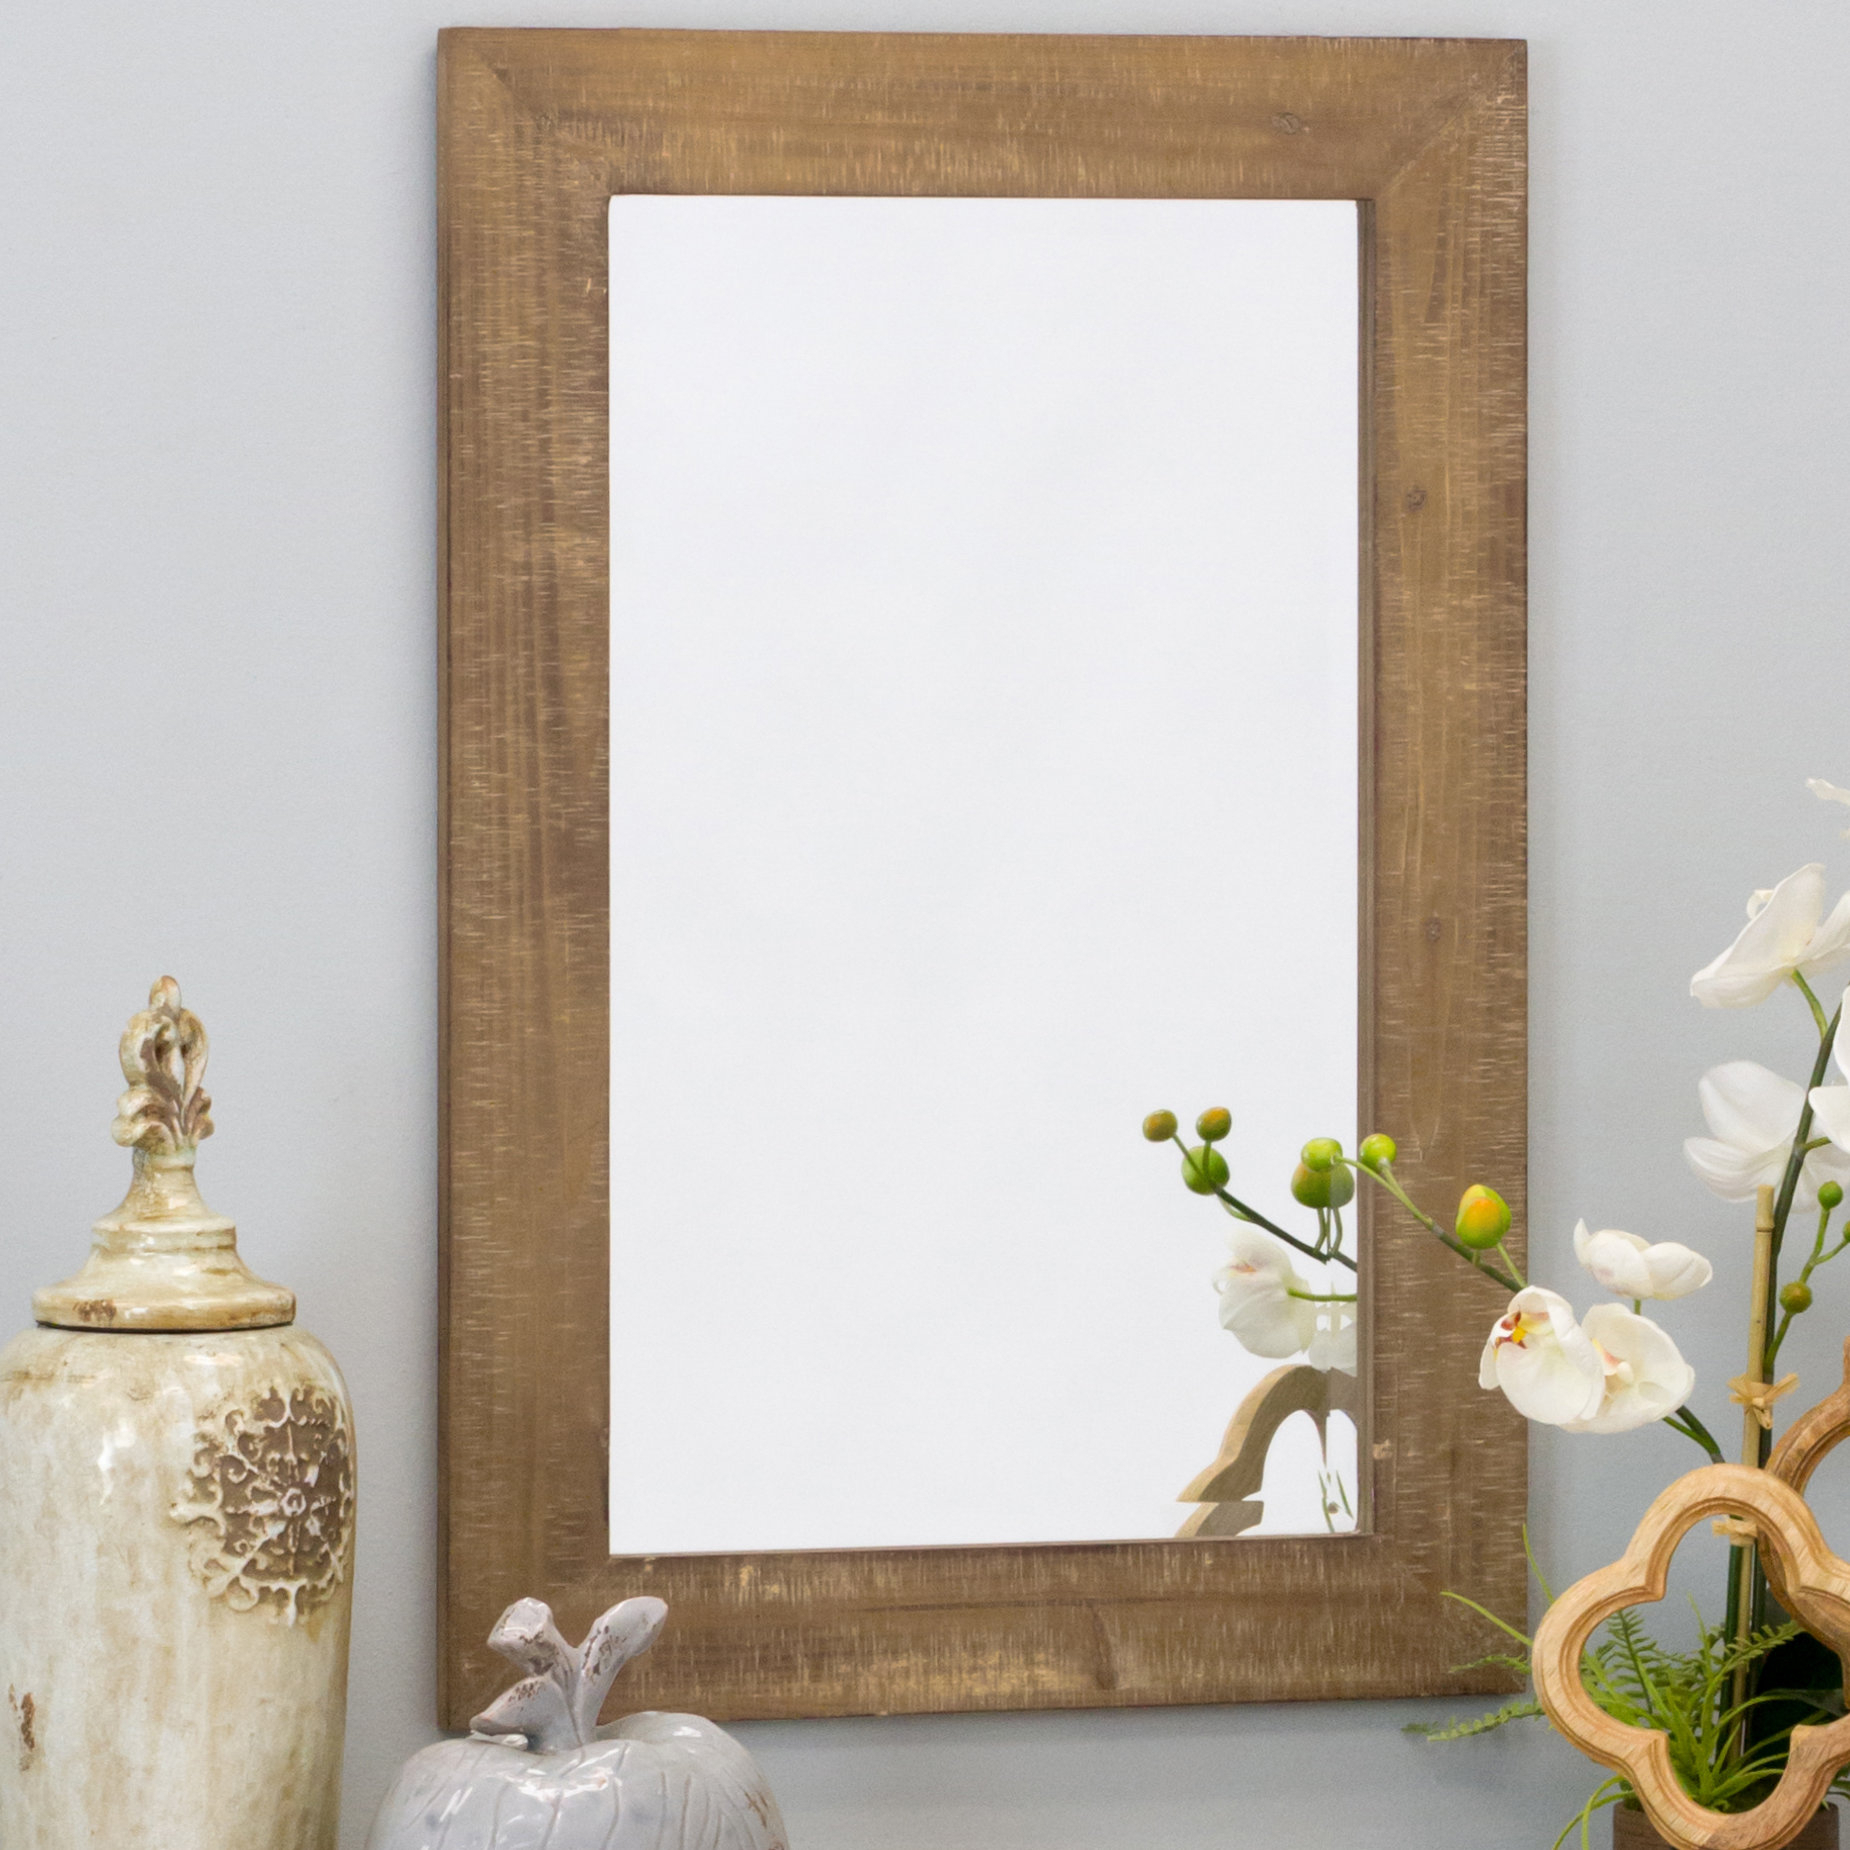 Longwood Rustic Beveled Accent Mirror intended for Longwood Rustic Beveled Accent Mirrors (Image 13 of 30)